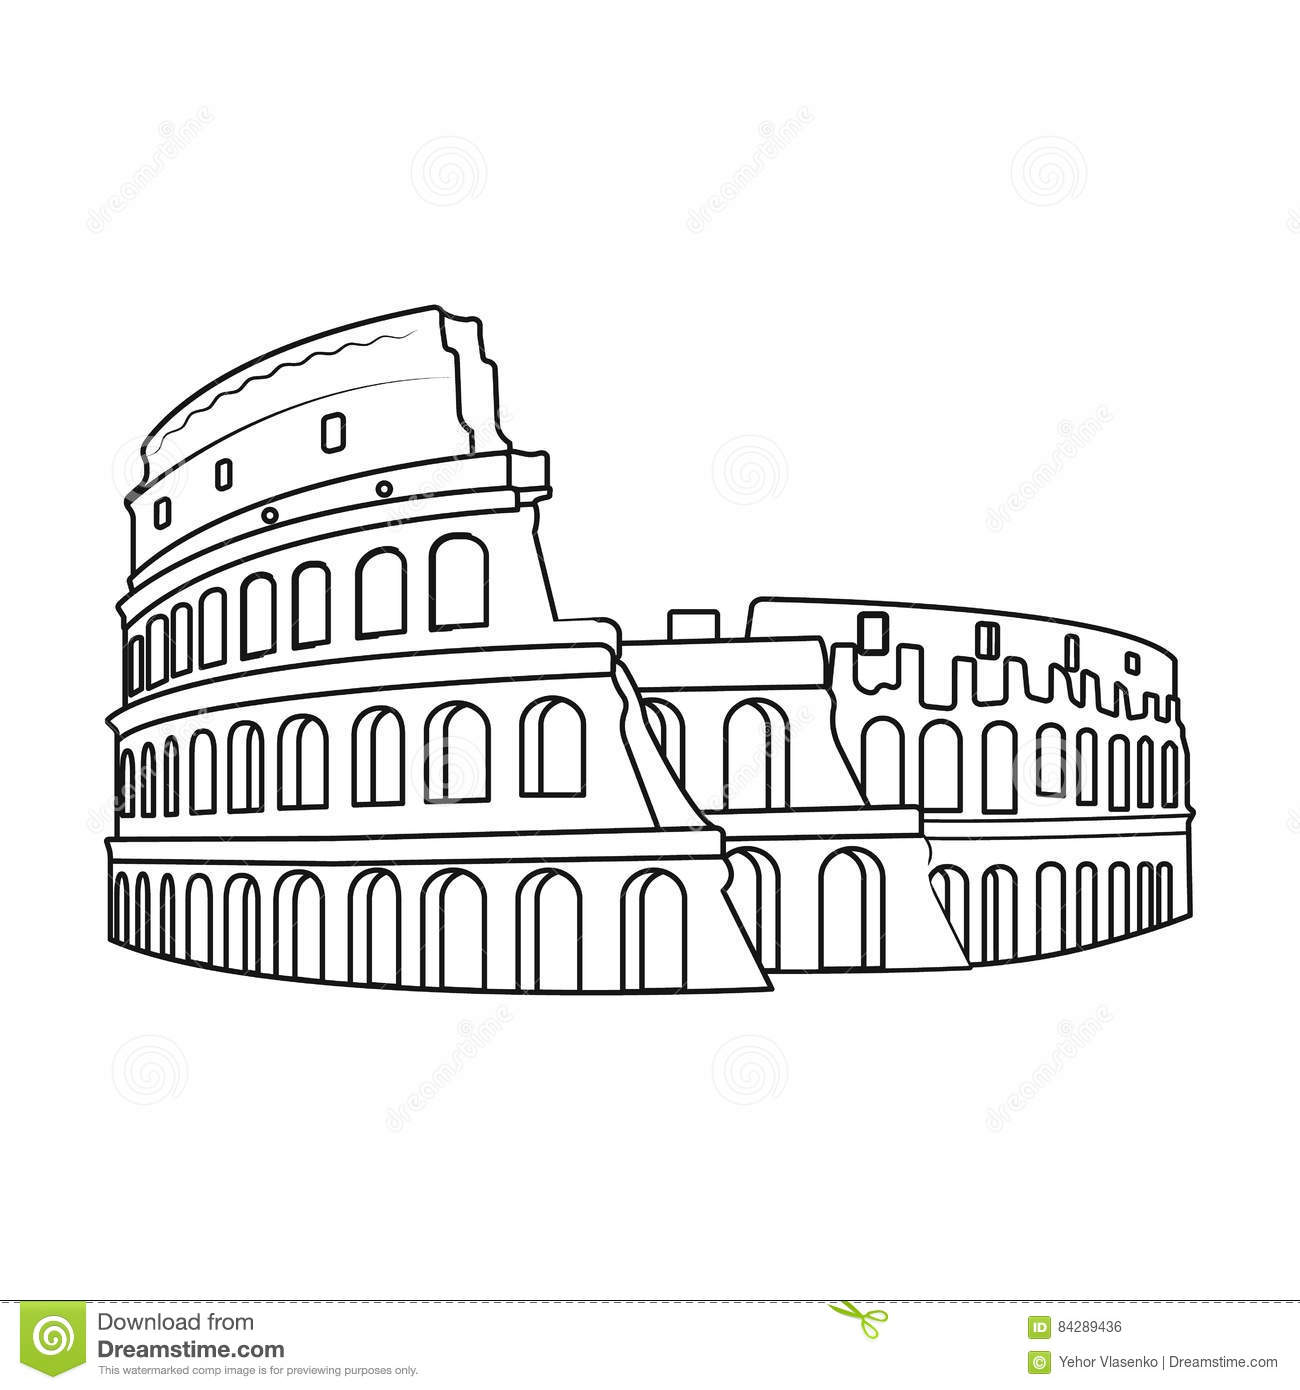 Colosseum in italy icon in outline style isolated on white for Colosseo da colorare